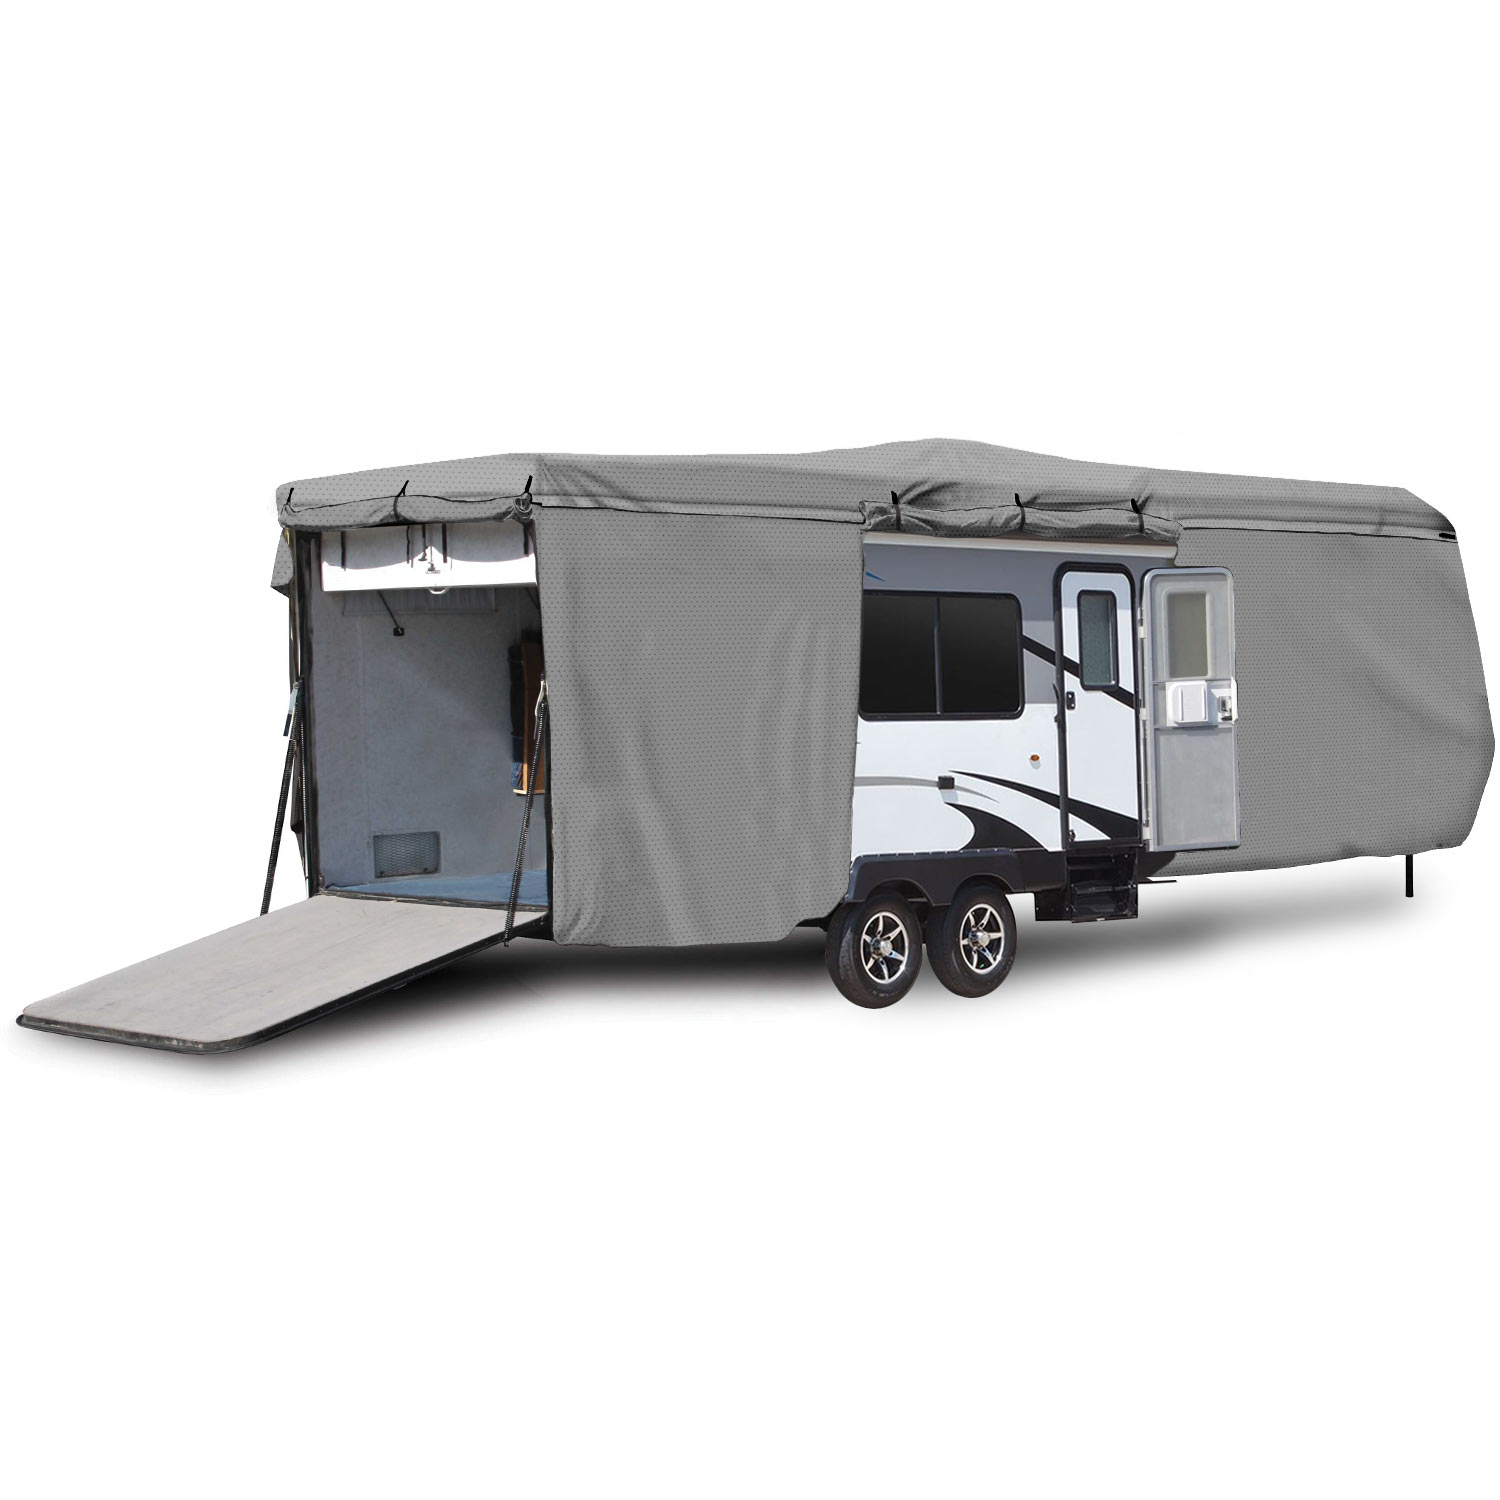 Waterproof Superior 5th Wheel Toy Hauler RV Motorhome Cover Fits Length 20-23 New Fifth Wheel Travel Trailer Camper Zippered Panels Heavy Duty 4 Layer Fabric